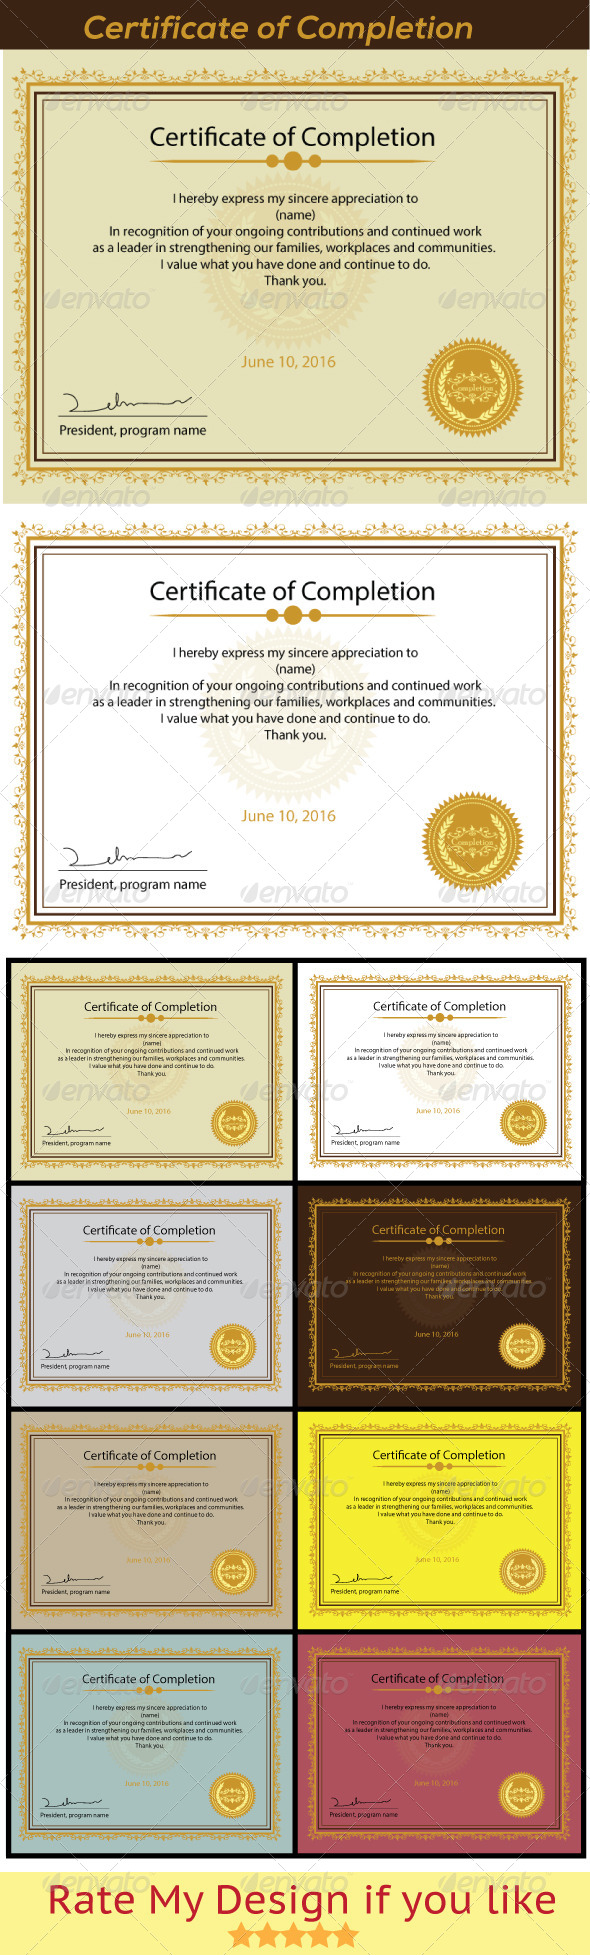 GraphicRiver Certificate of Completion 5847004